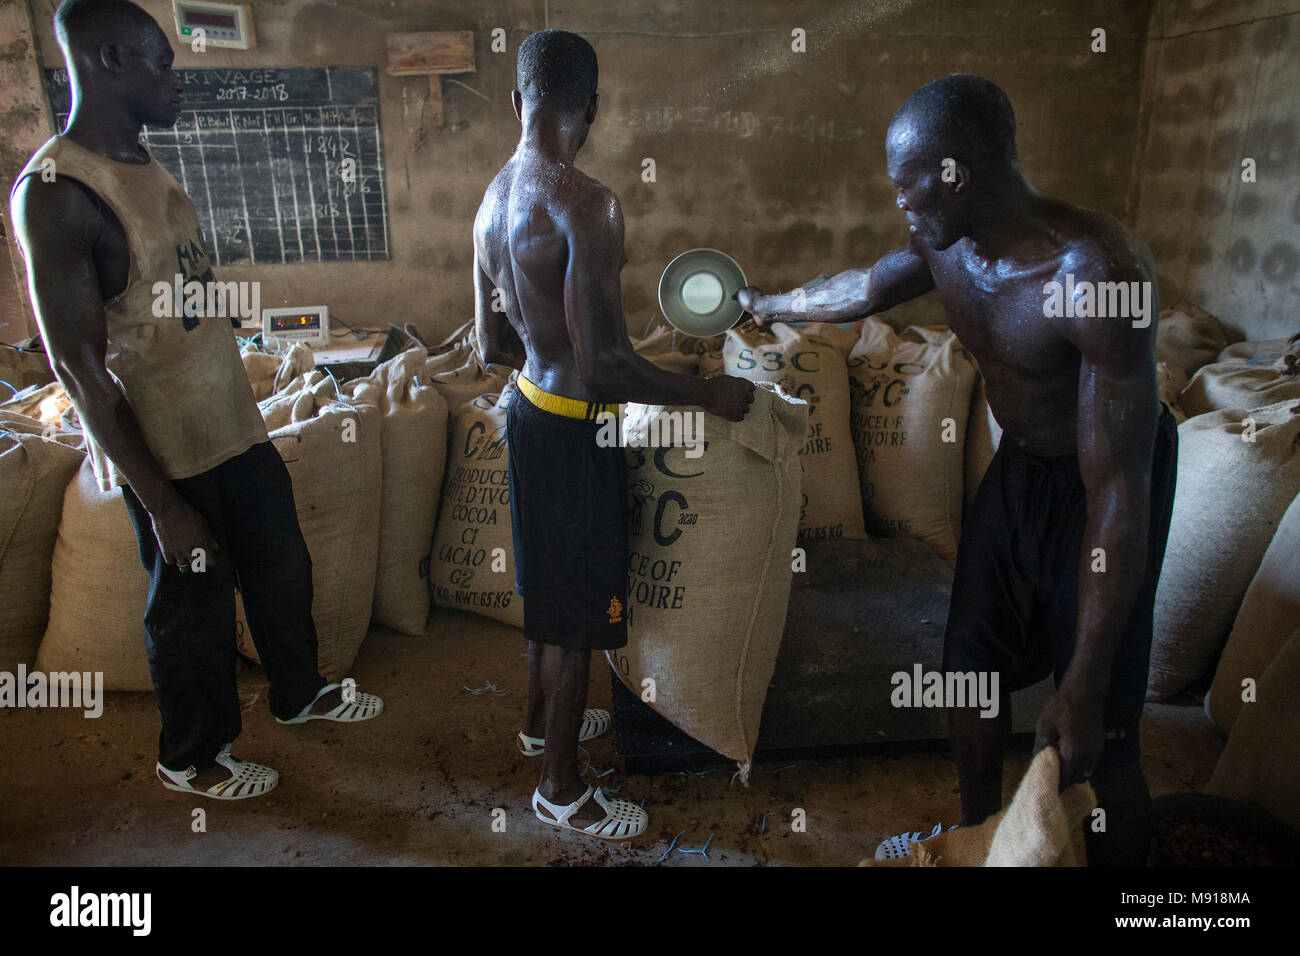 Ivory Coast. Workers filling and weighing cocoa bags. - Stock Image